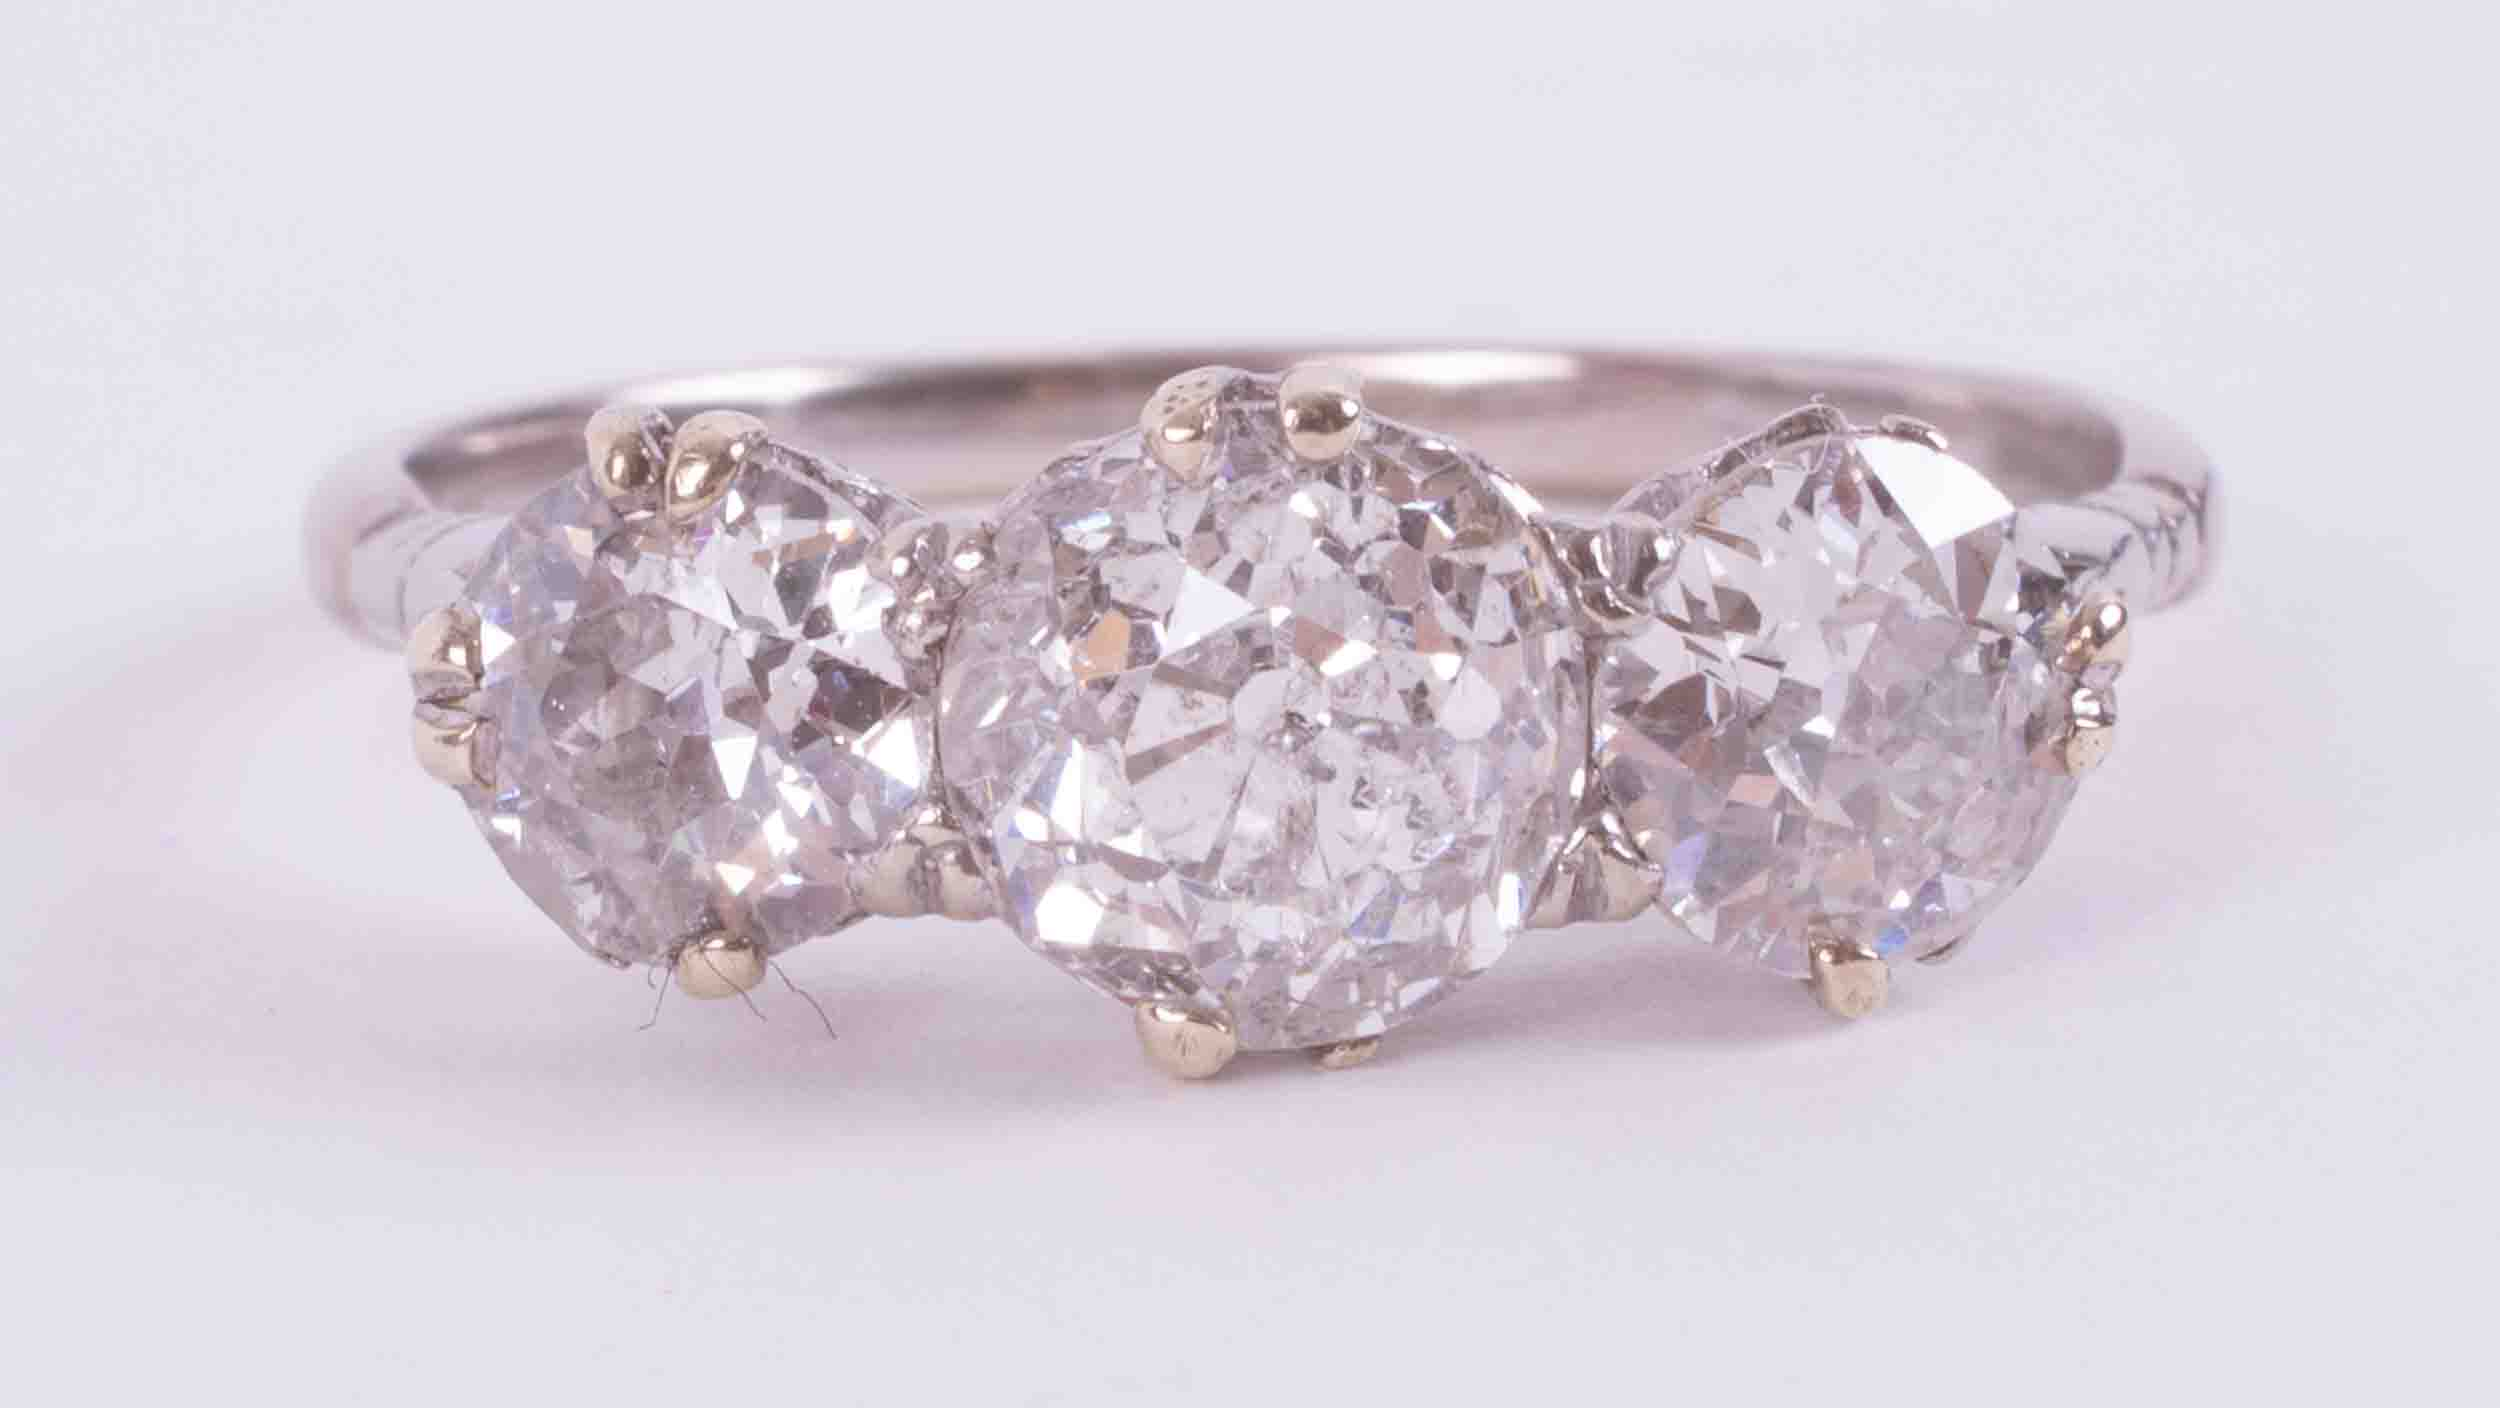 An impressive 18ct white & yellow gold three stone ring set with approx. 3.37 carats total weight of